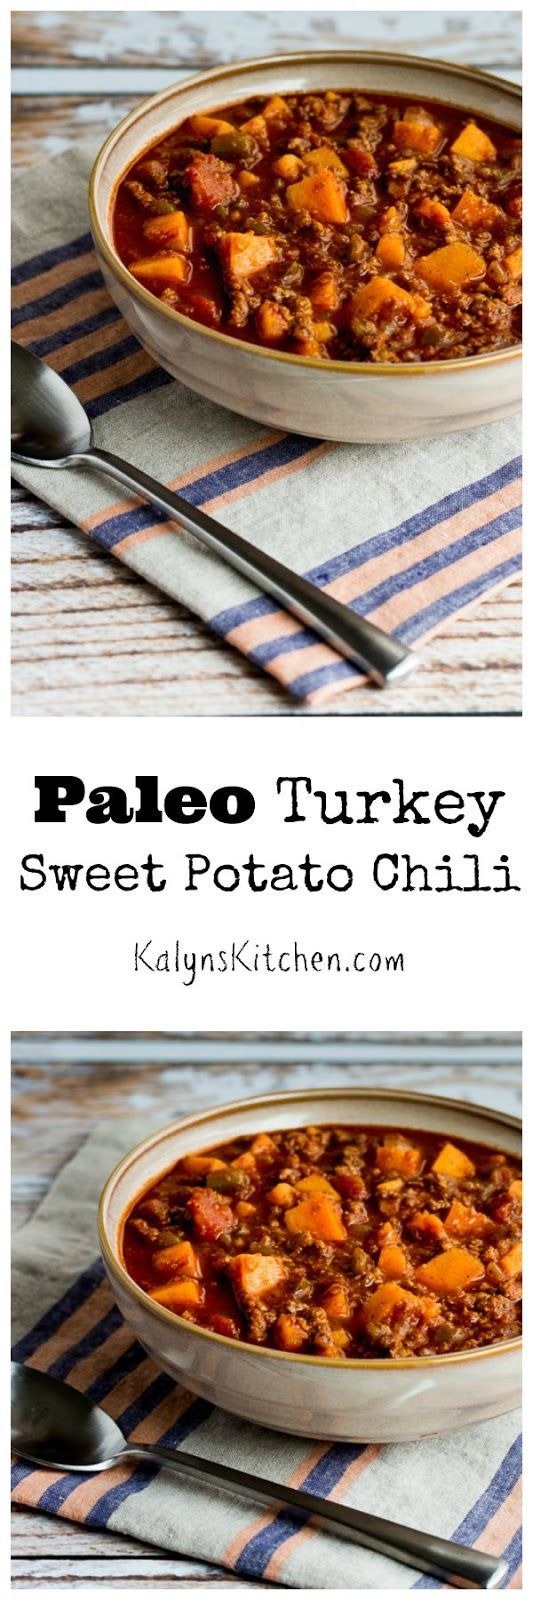 Paleo Turkey Sweet Potato Chili is also gluten-free and dairy-free. If you like savory sweet potato recipes like I do, you'll love this chili.